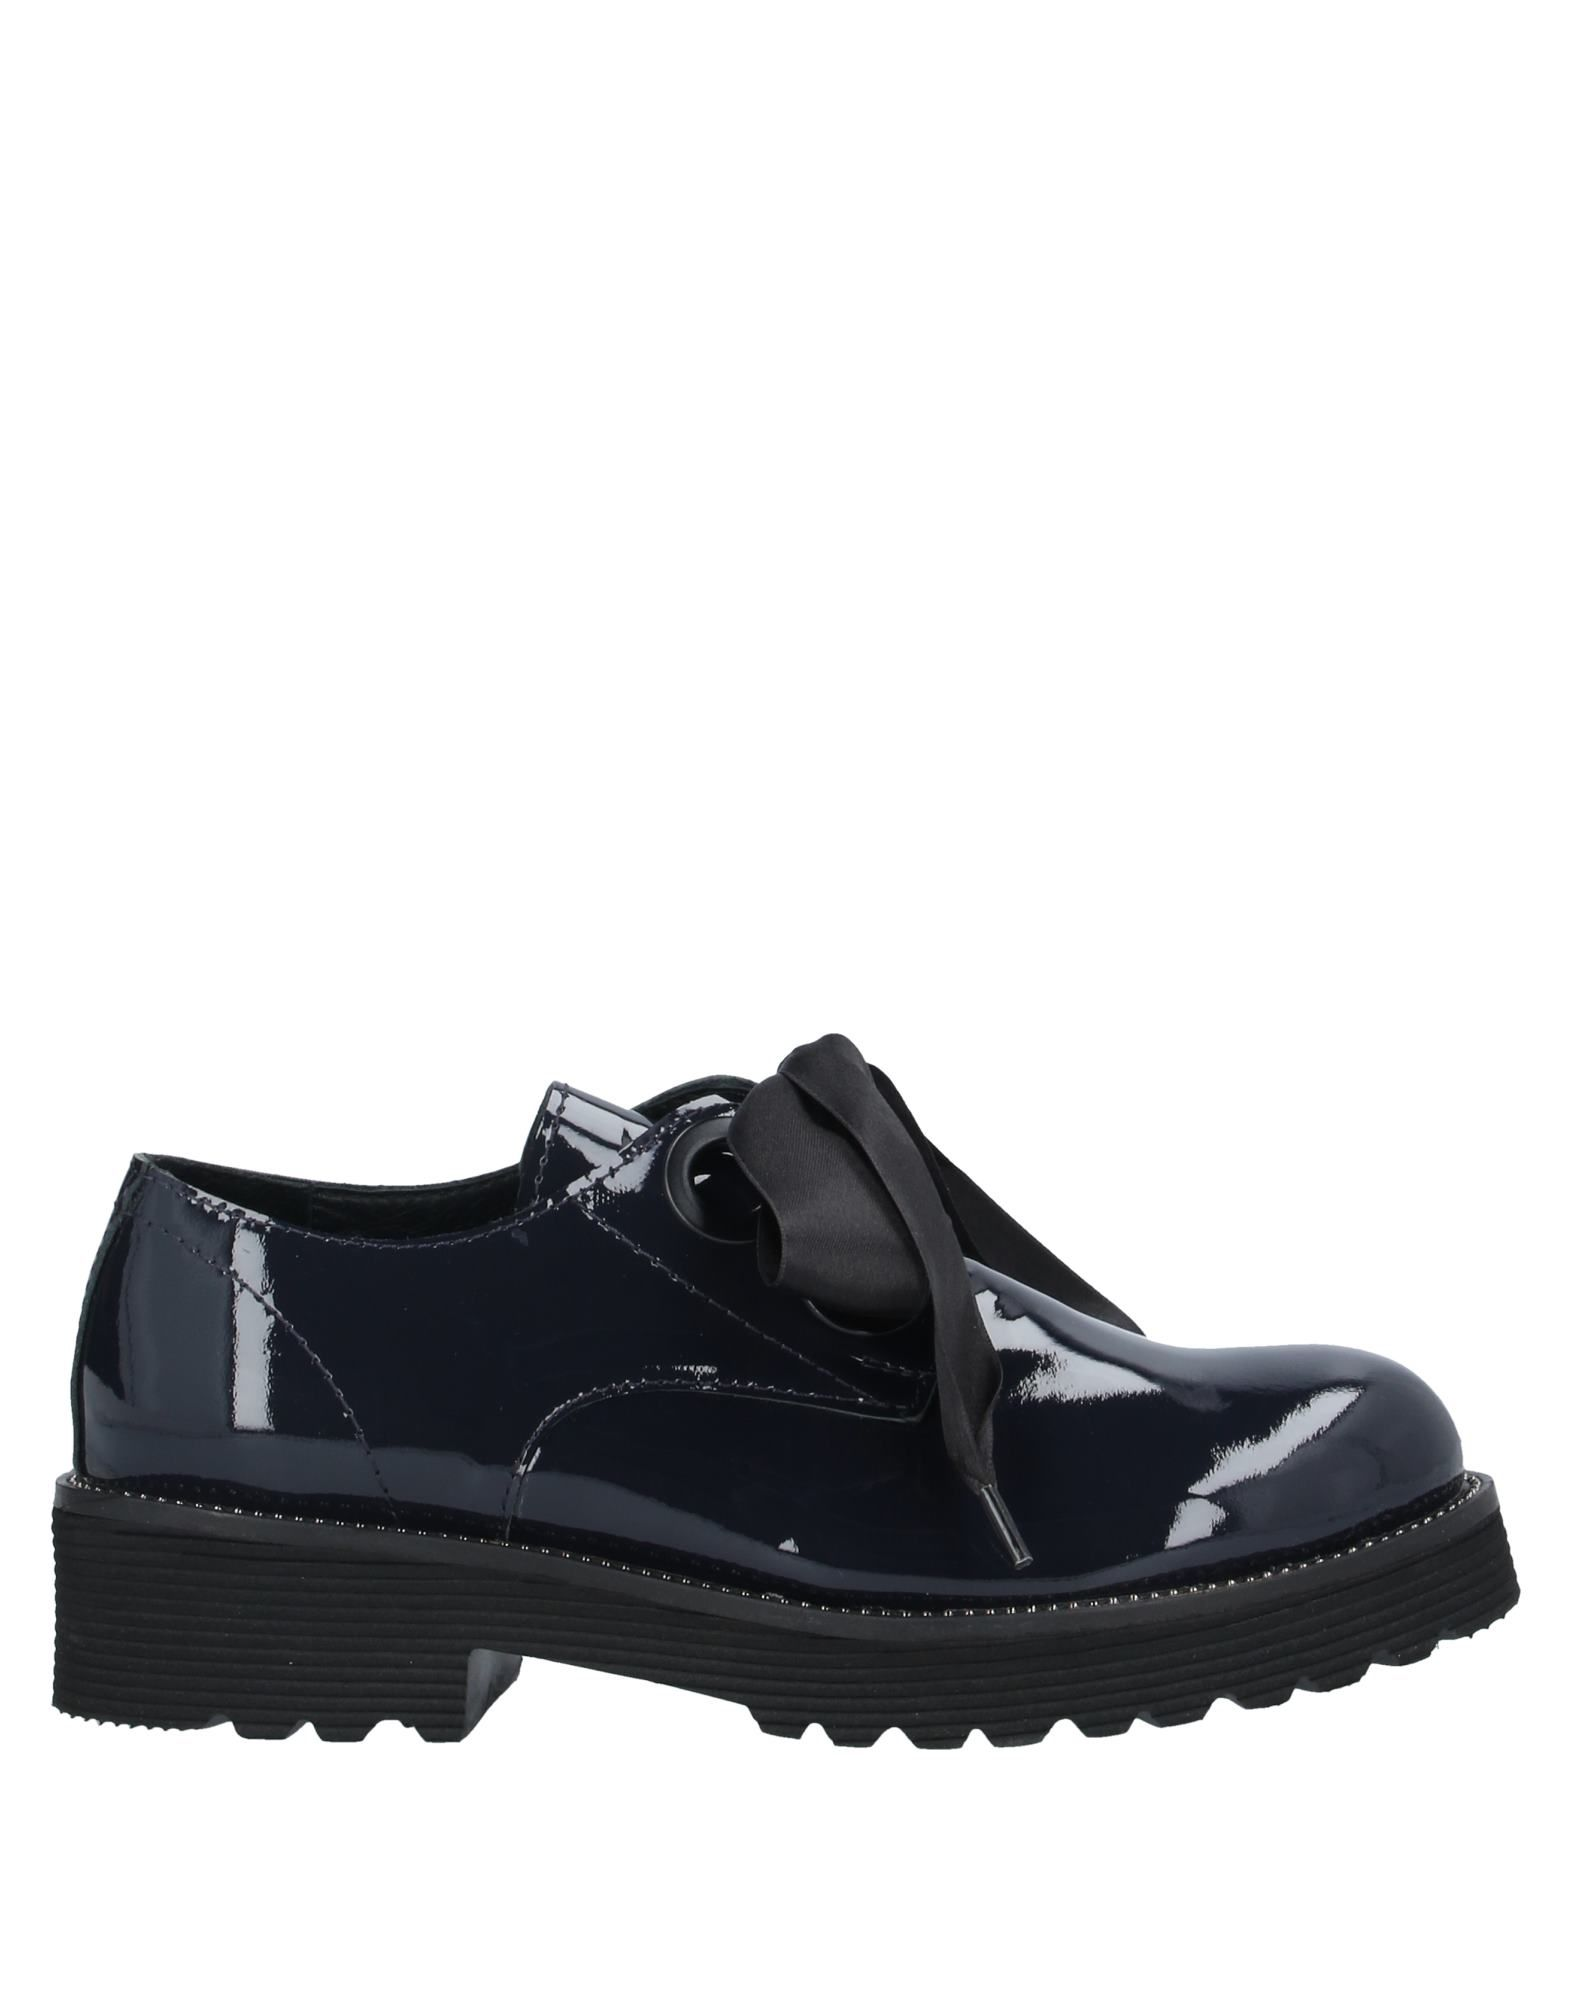 BUENO Lace-up shoes. varnished effect, metal applications, solid color, round toeline, square heel, leather lining, rubber sole, contains non-textile parts of animal origin. Soft Leather